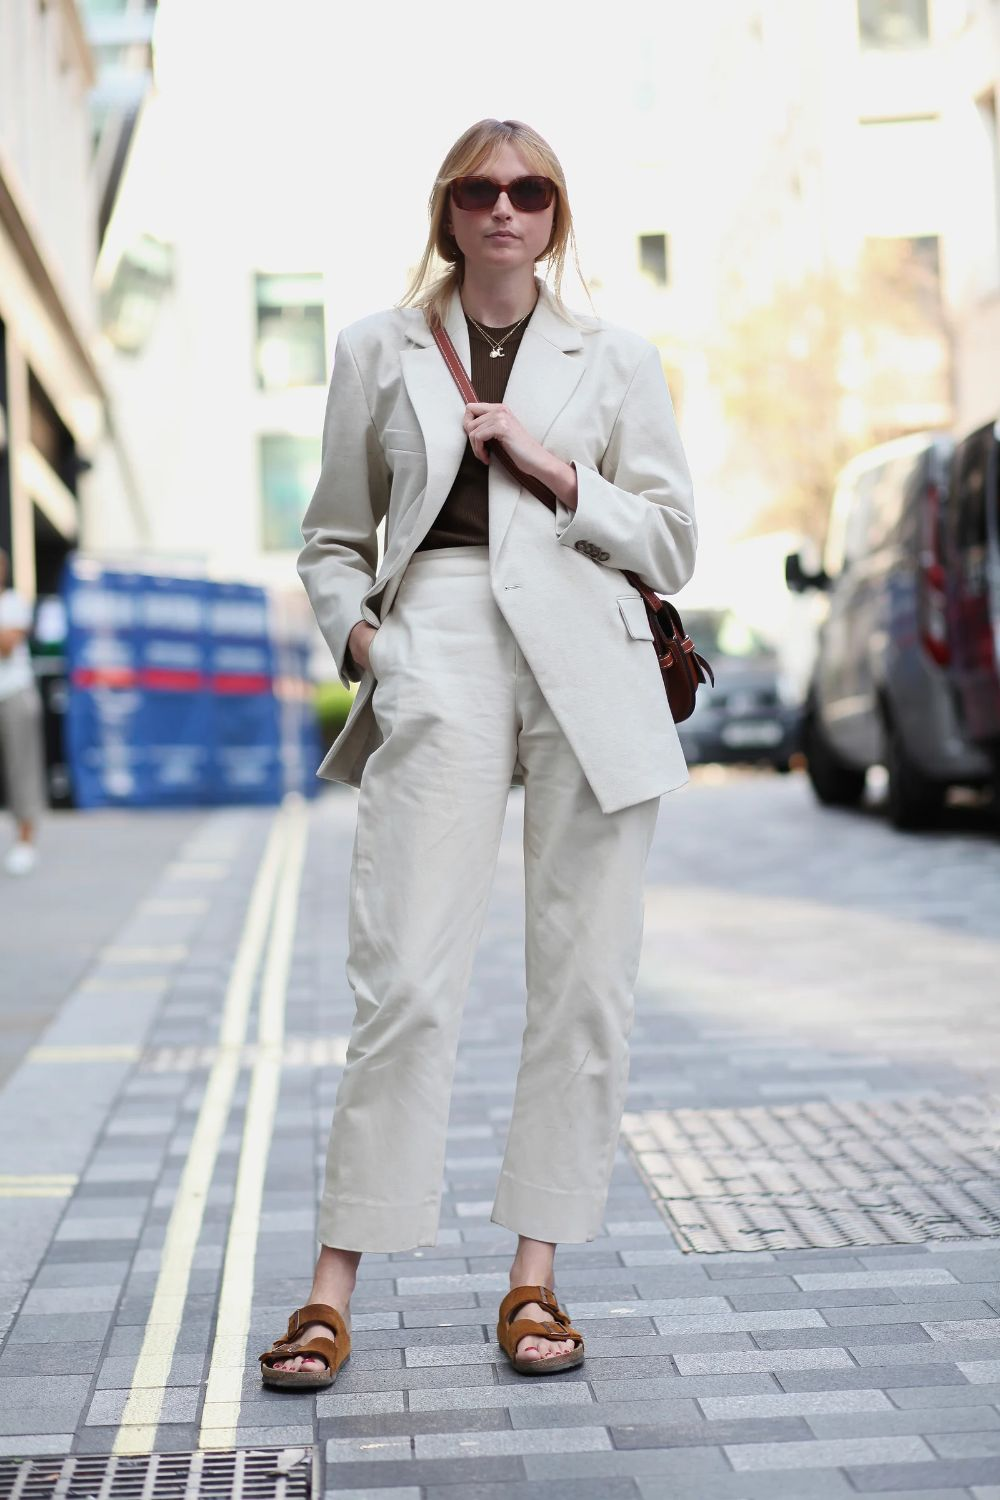 New York Summer Fashion Outfit Ideas For Women 2022